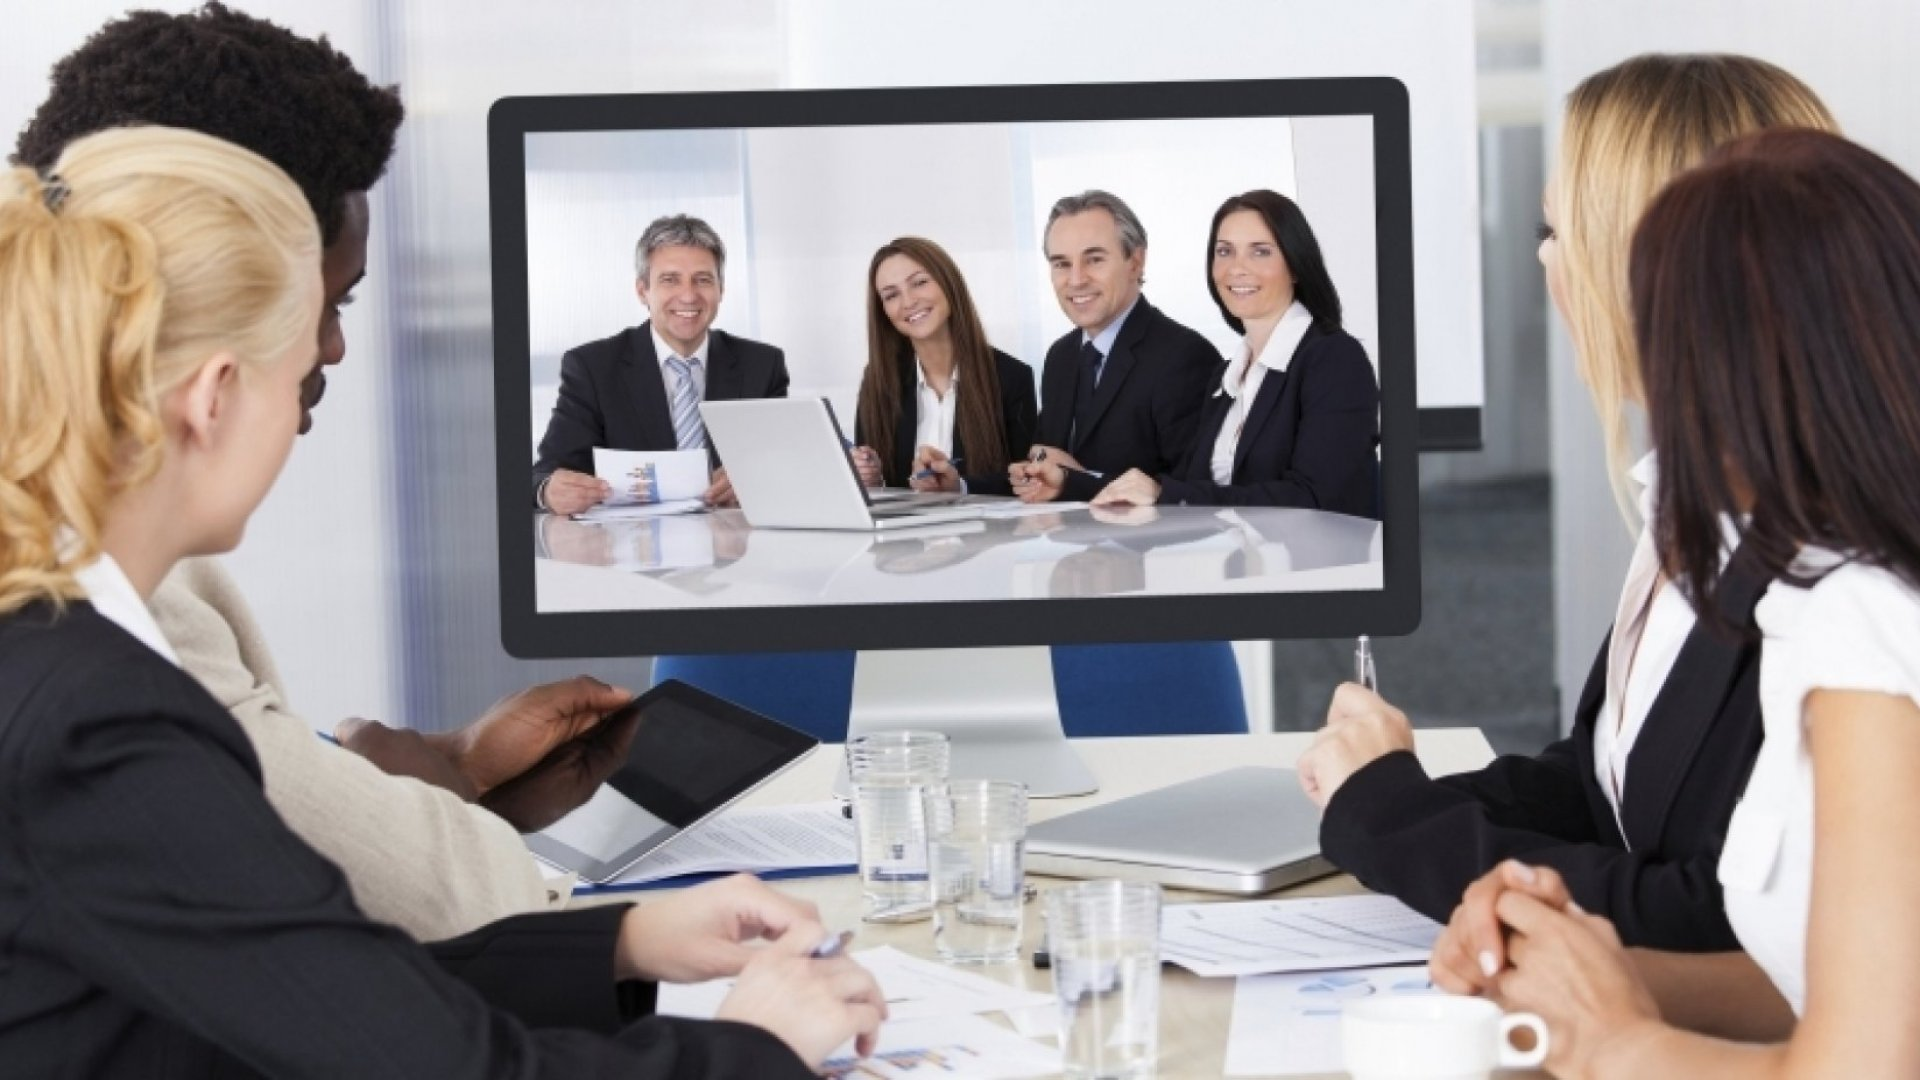 Are Online Conferences The New Normal?